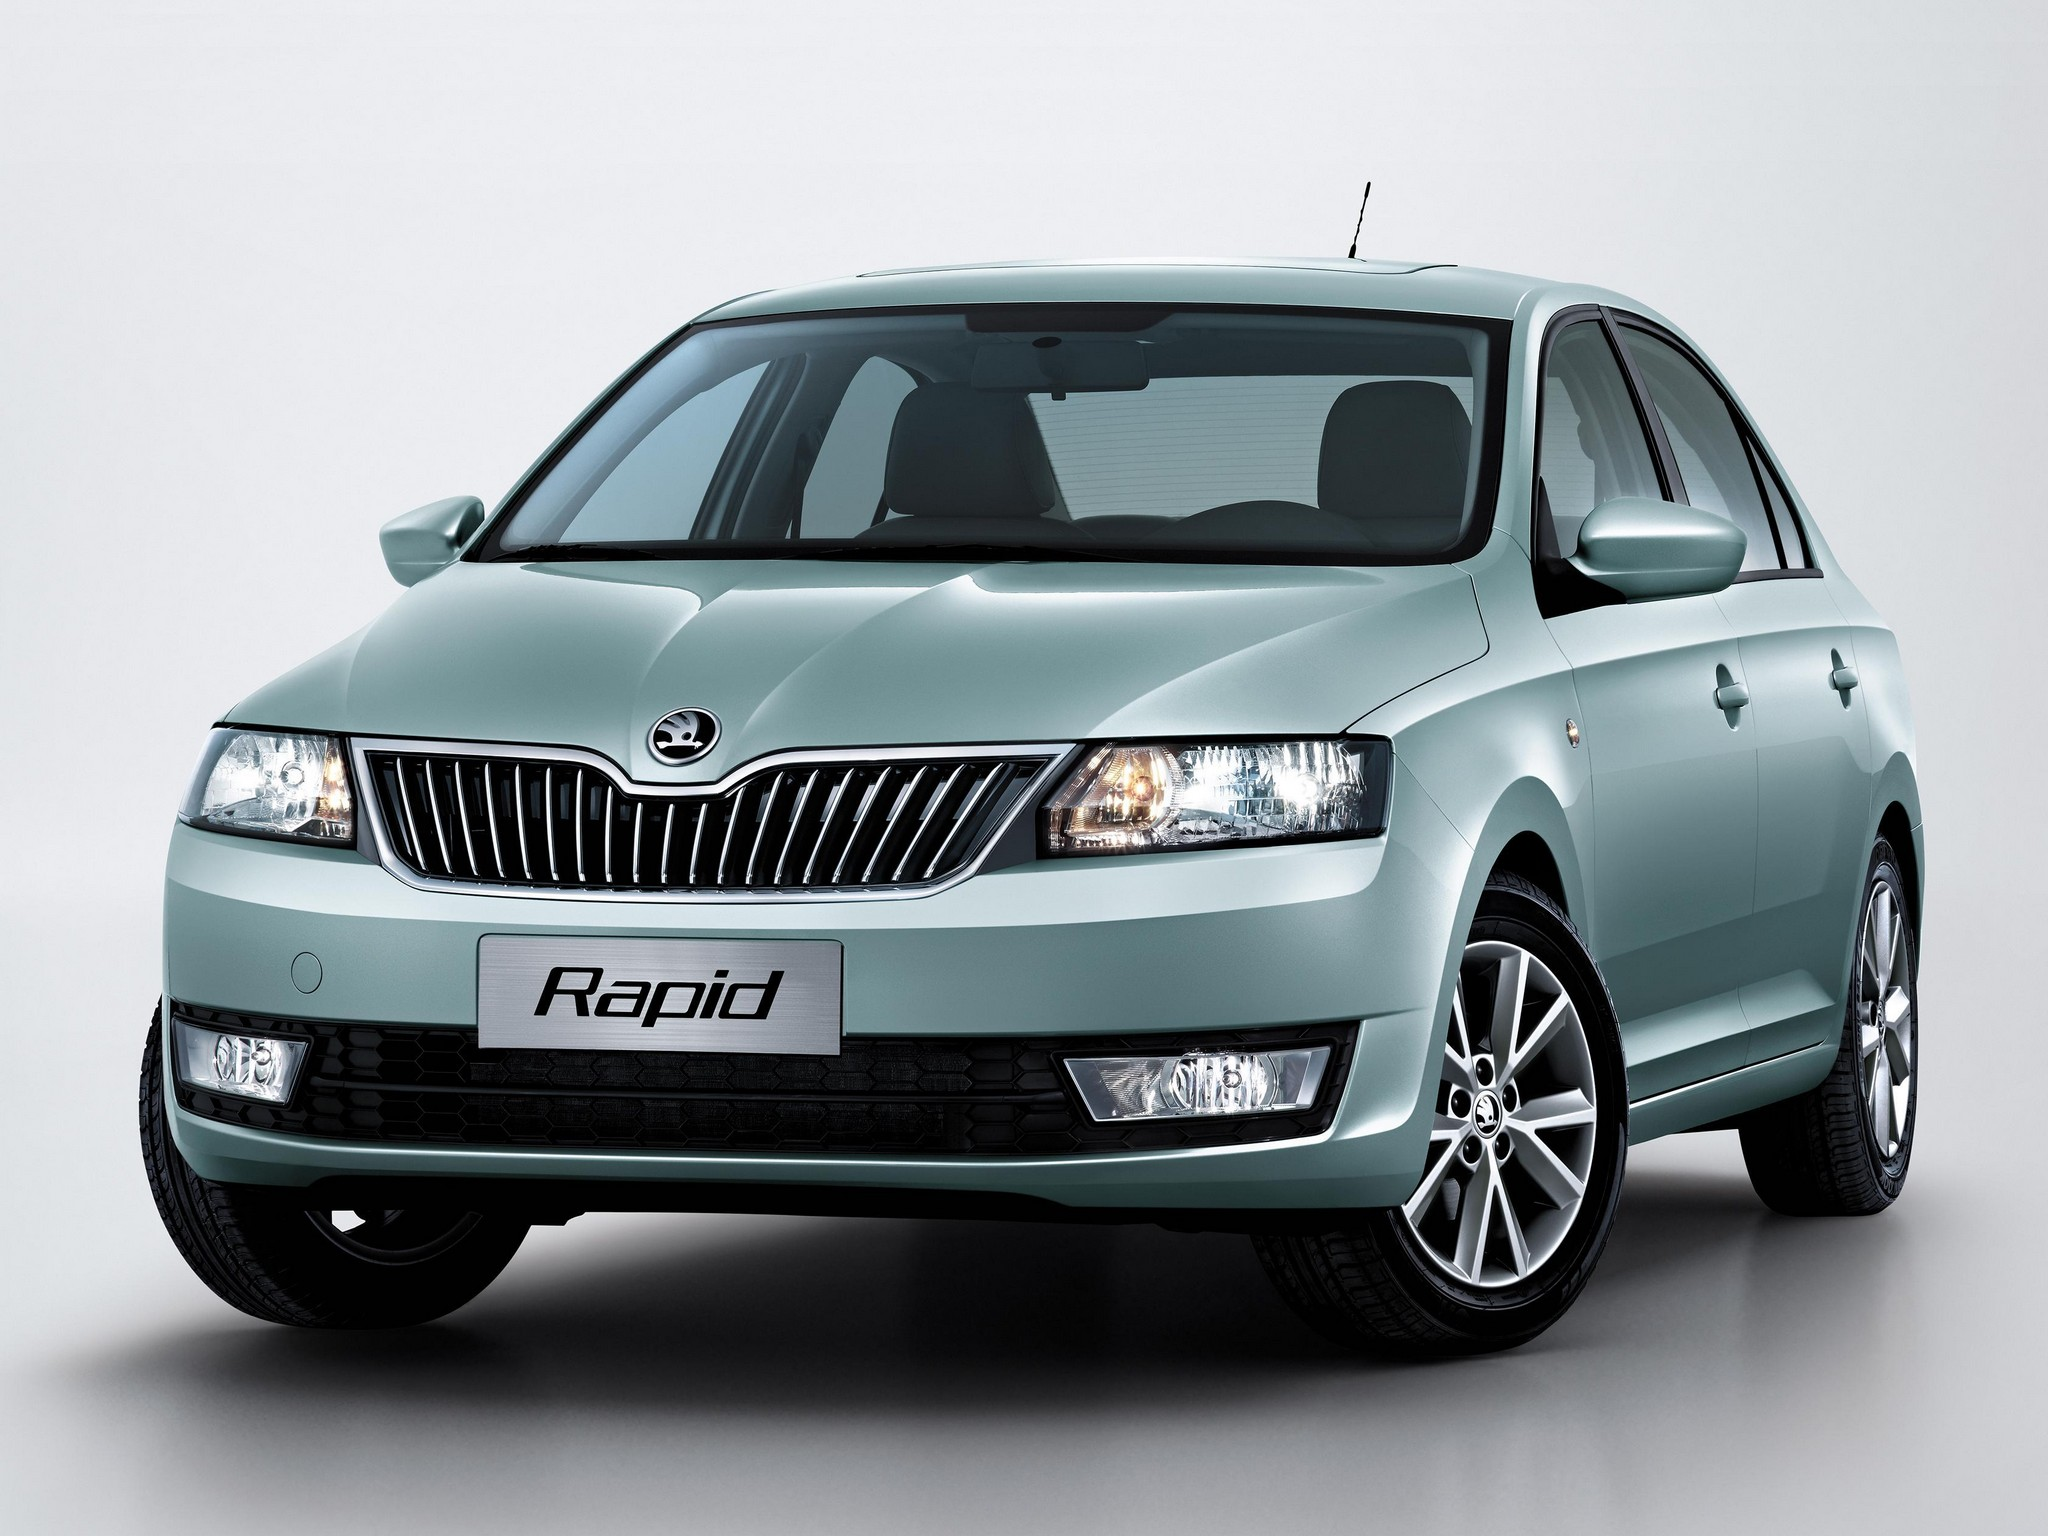 Skoda Rapid Leisure 1 6 Mpi At Petrolprice In India